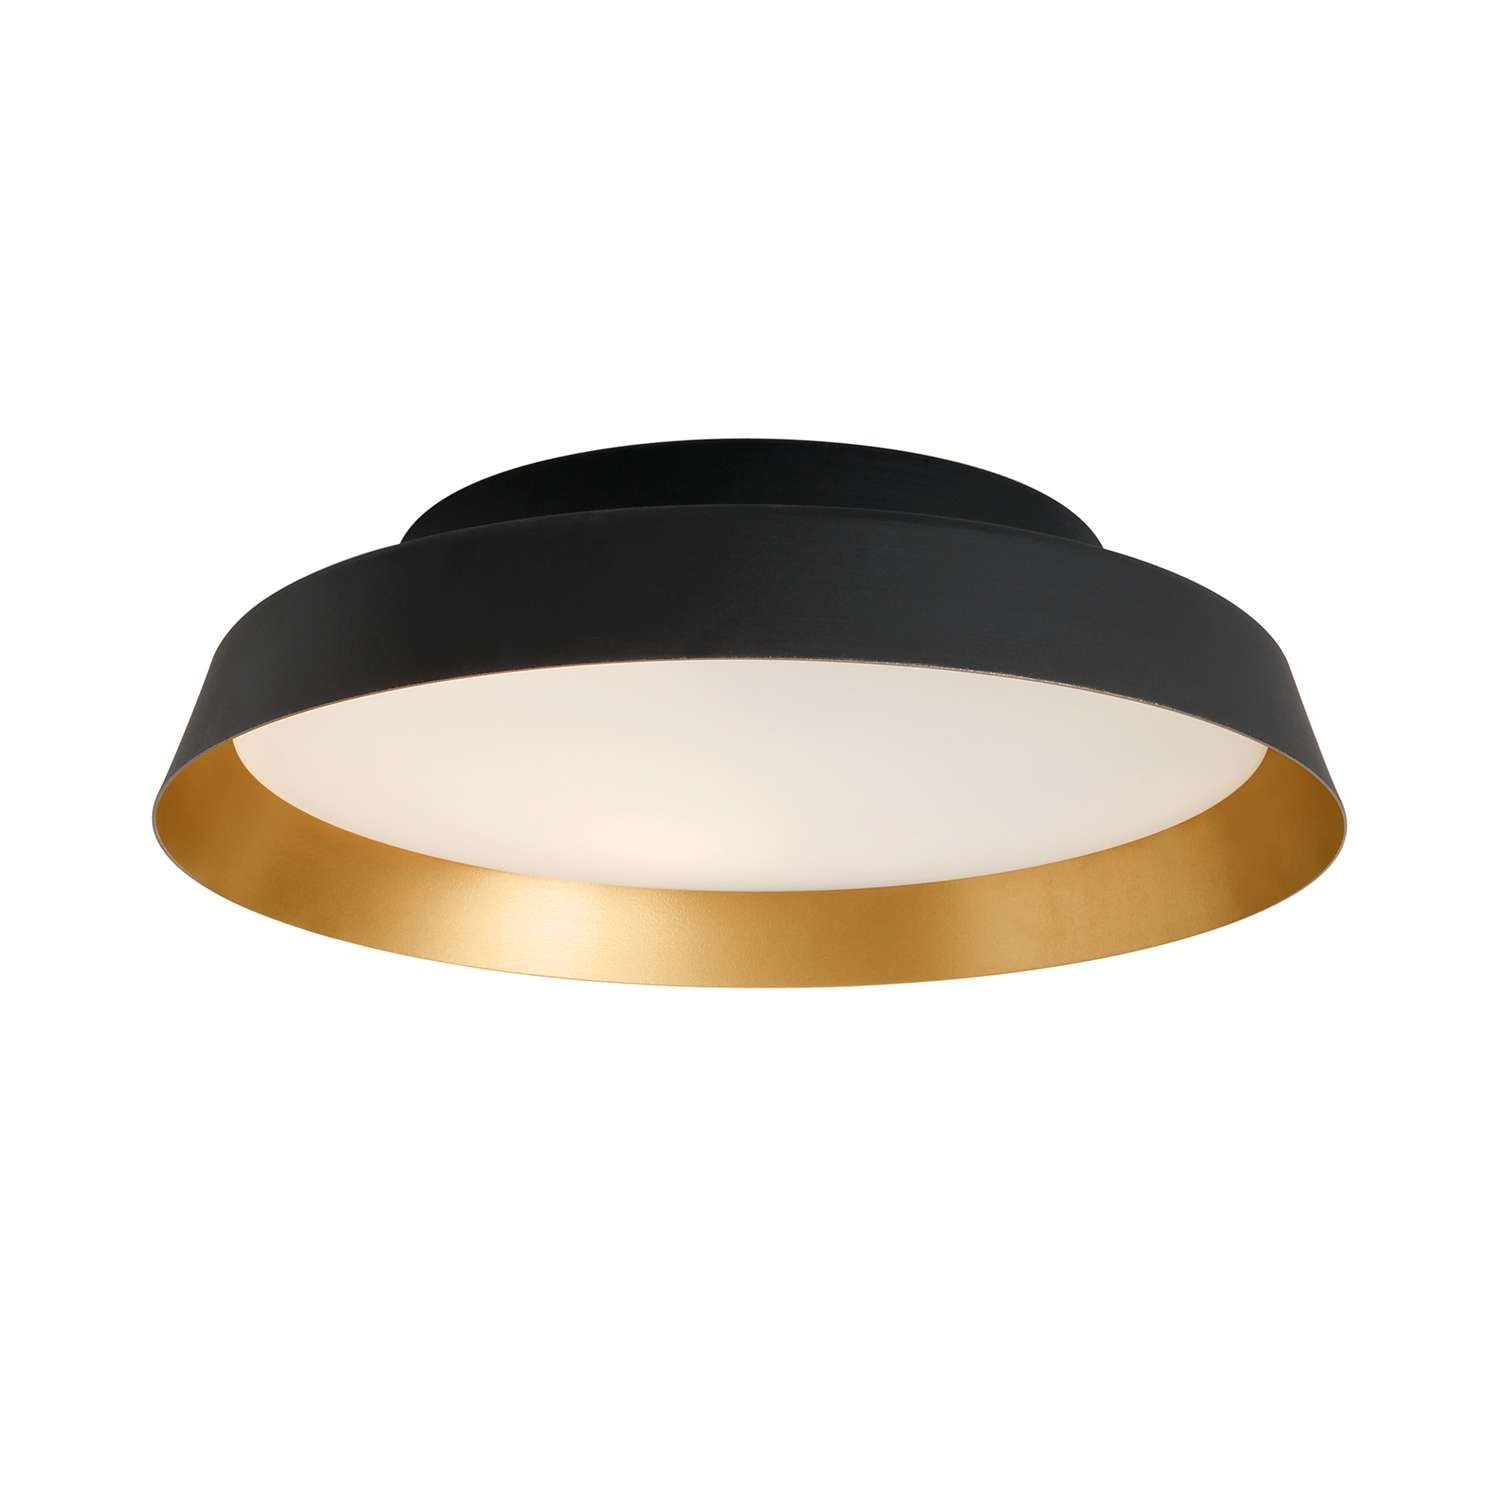 Black Exterior Gold Interior Wall Ceiling Lights Ceiling Lights Best Home Interior Design